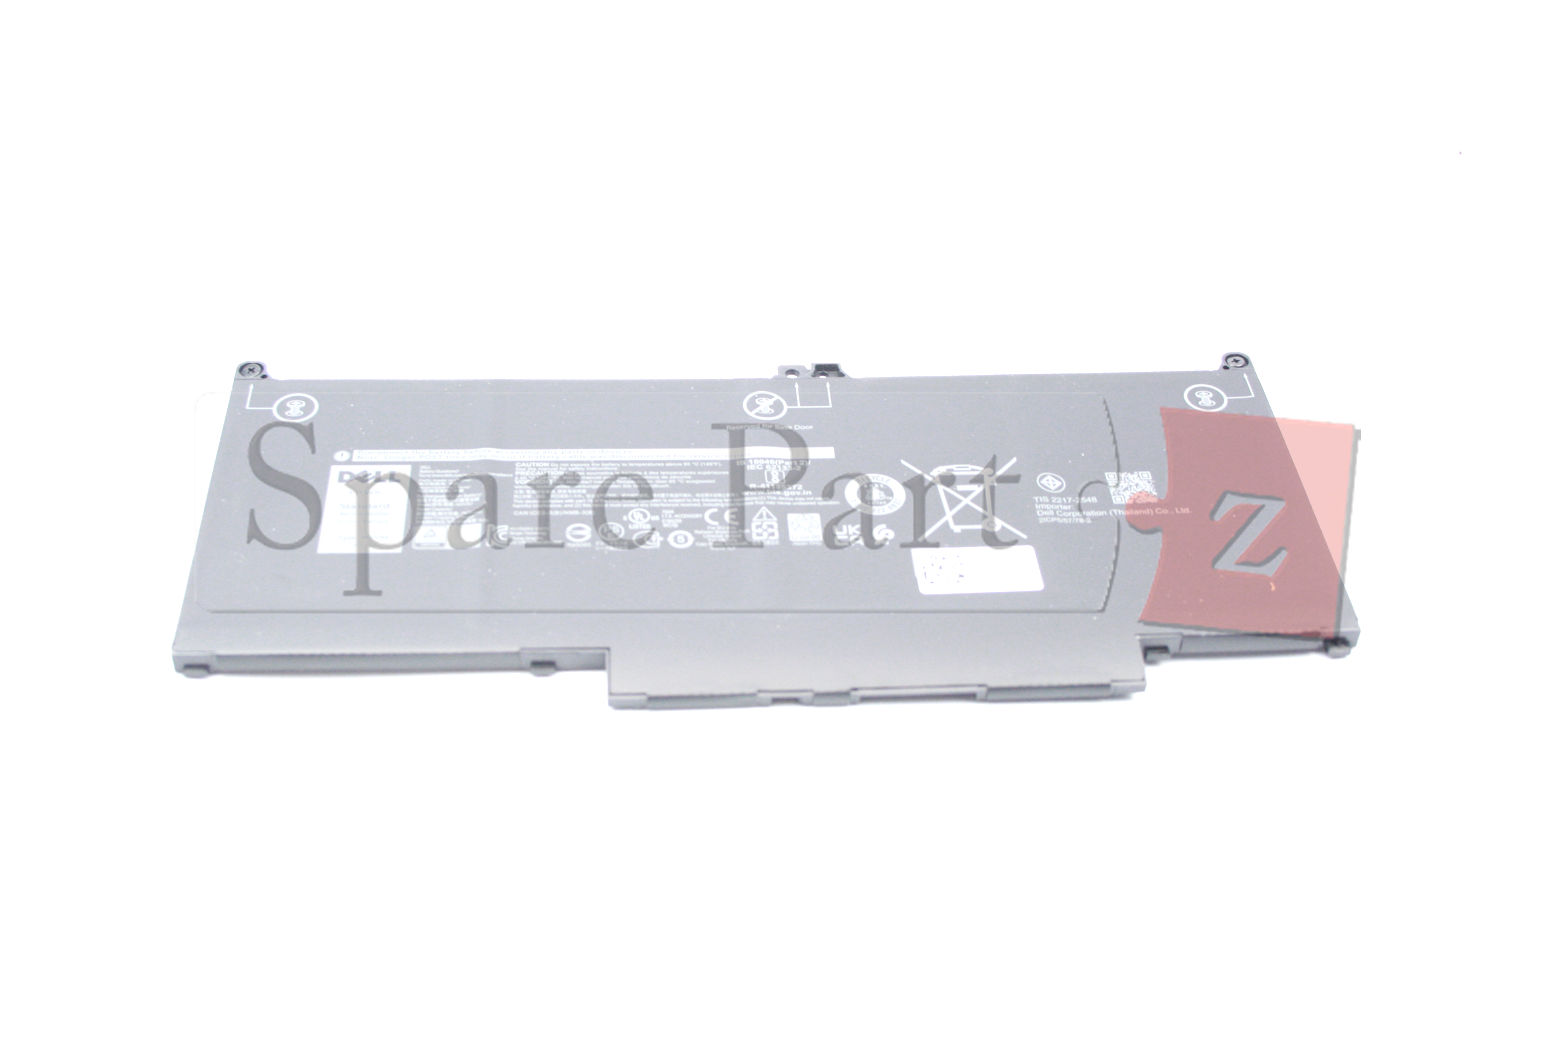 Original Dell Latitude 5310 7400 7300 5300 60Wh Akku Battery 829MX